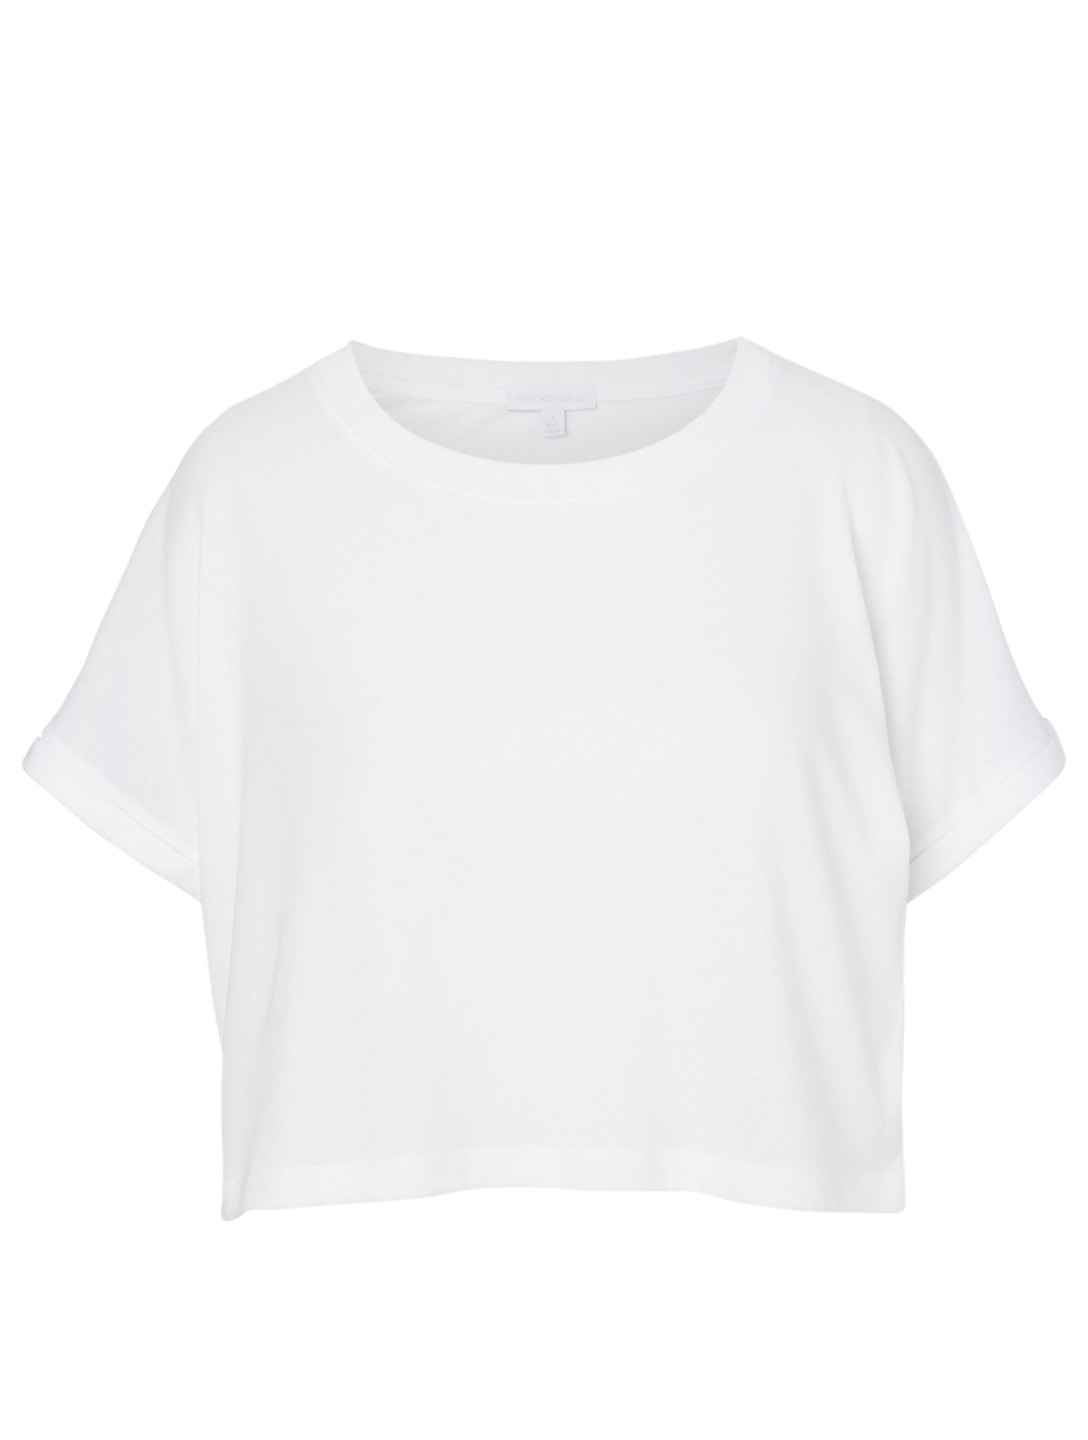 BEYOND YOGA Never Been Boxy Cropped T-Shirt Women's White